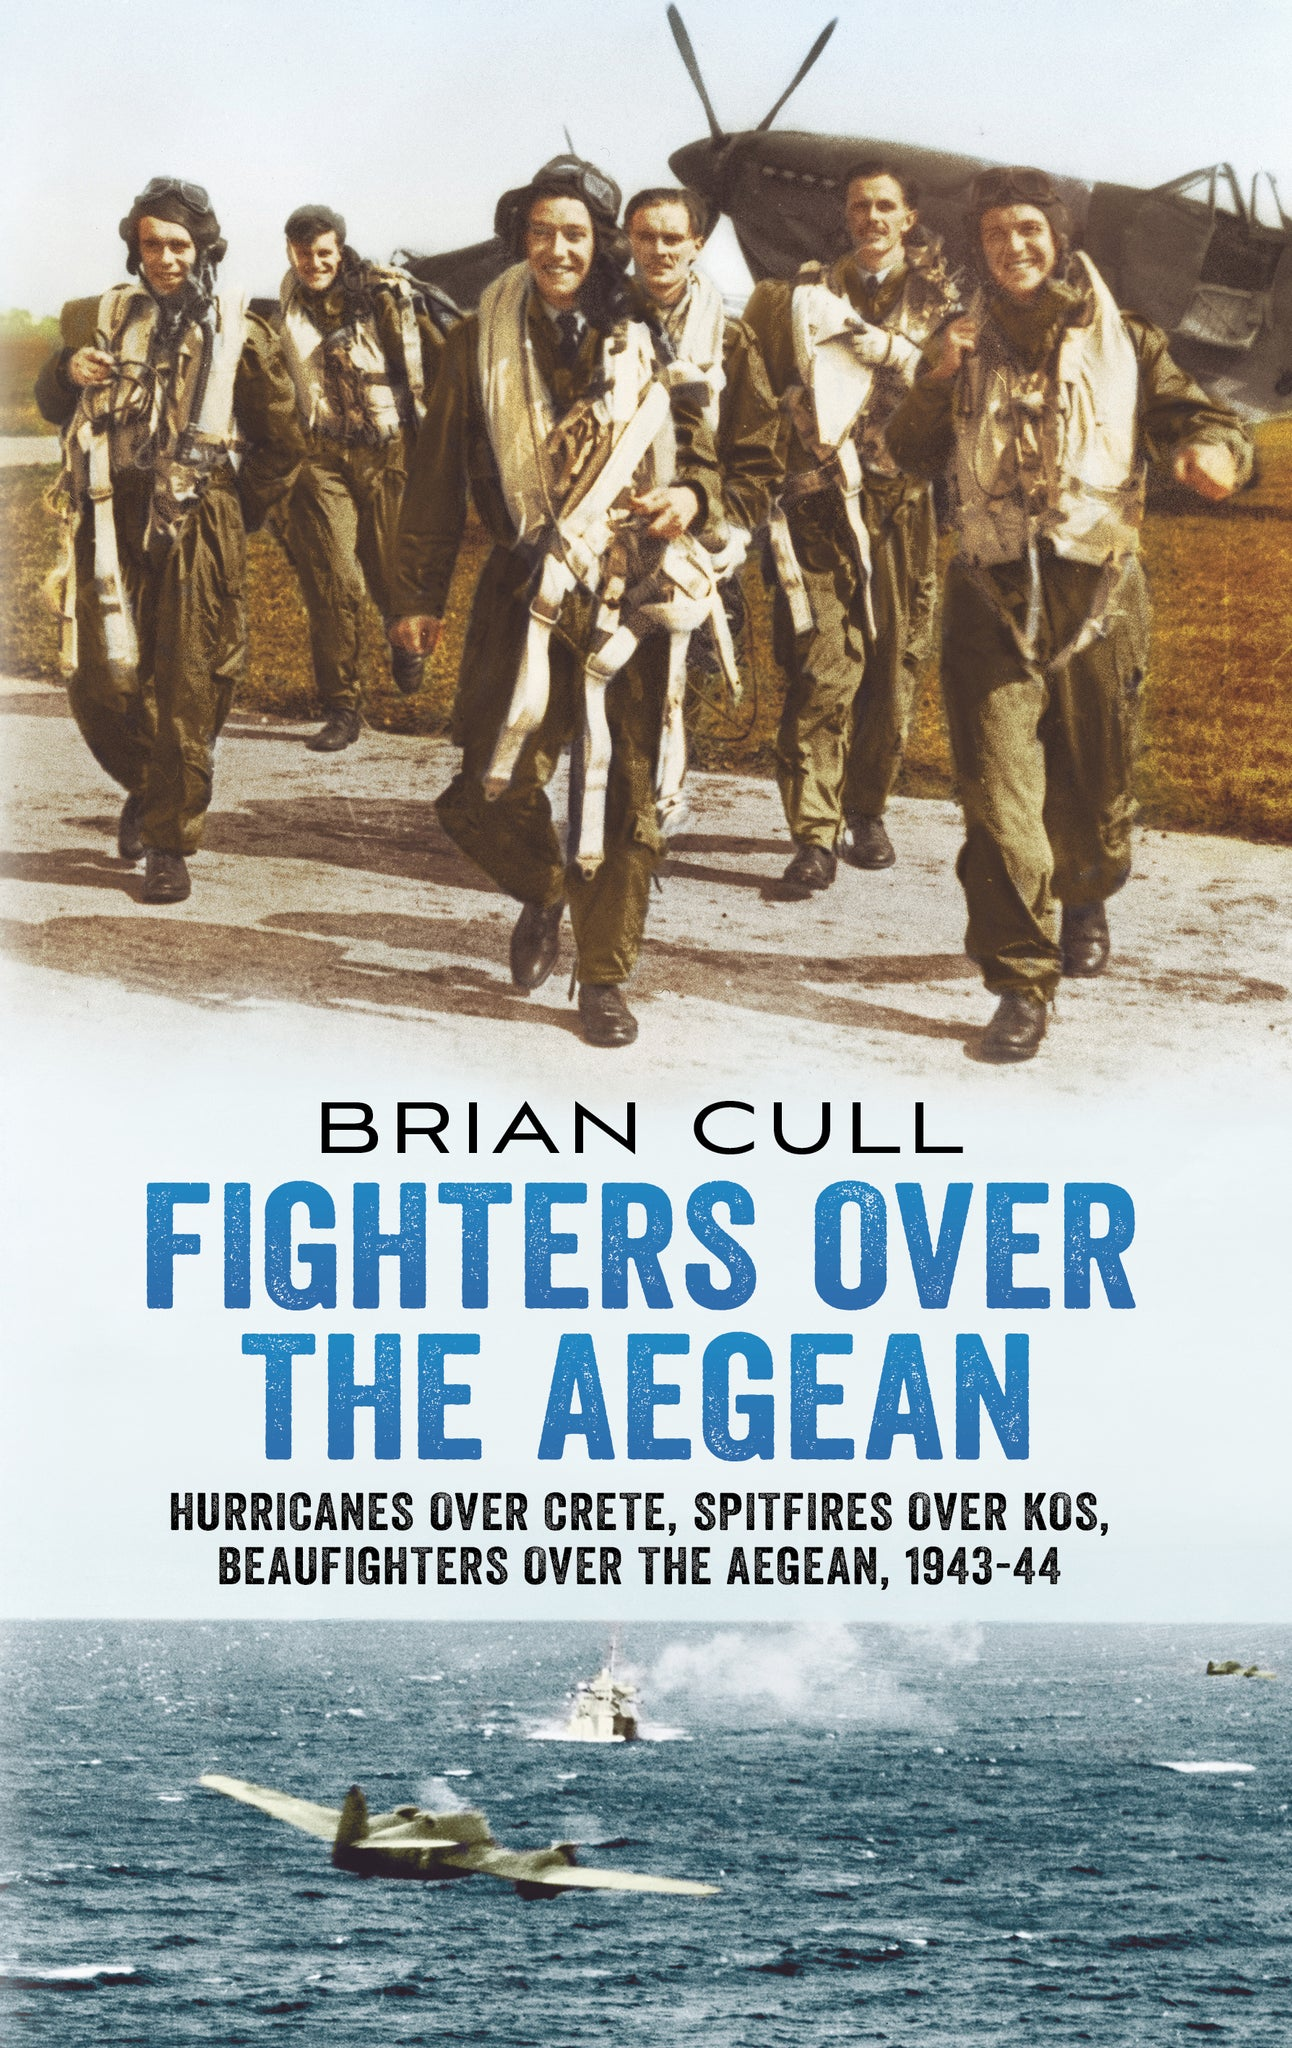 Fighters over the Aegean: Hurricanes over Crete, Spitfires over Kos, Beaufighters over the Aegean (hardback edition)